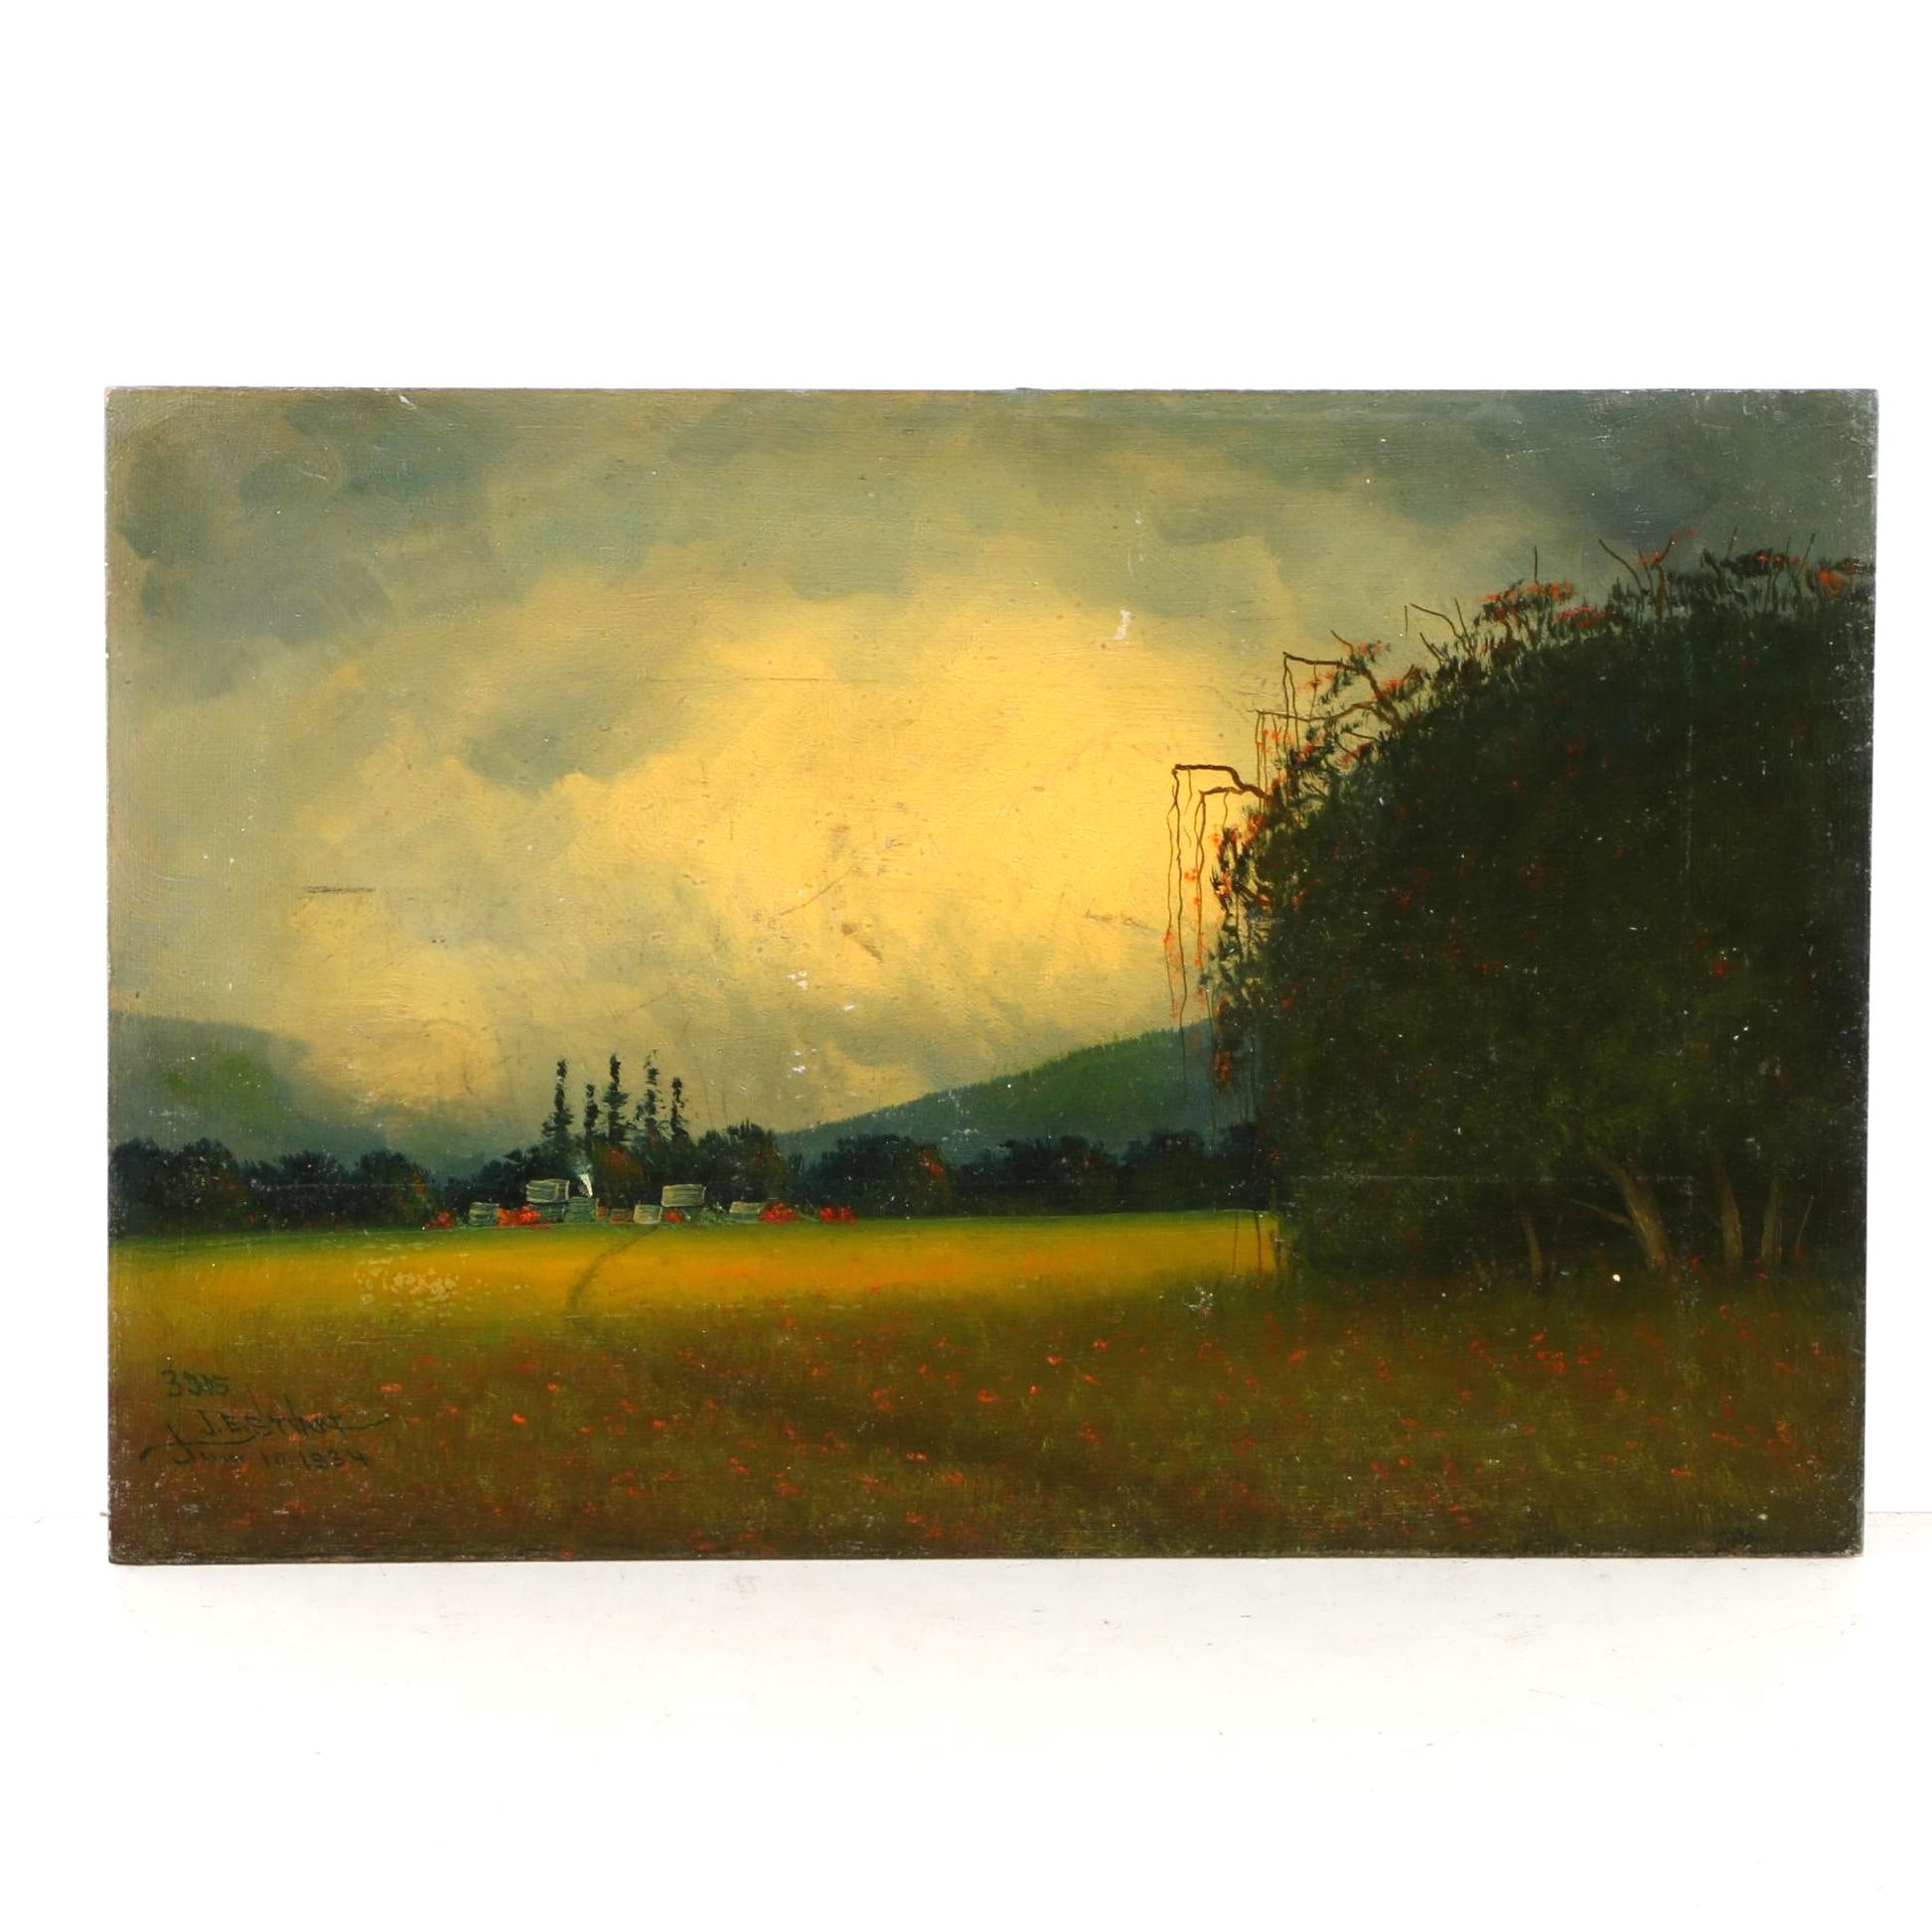 1934 James Everett Stuart Oil on Board of Landscape Near Salinas, CA